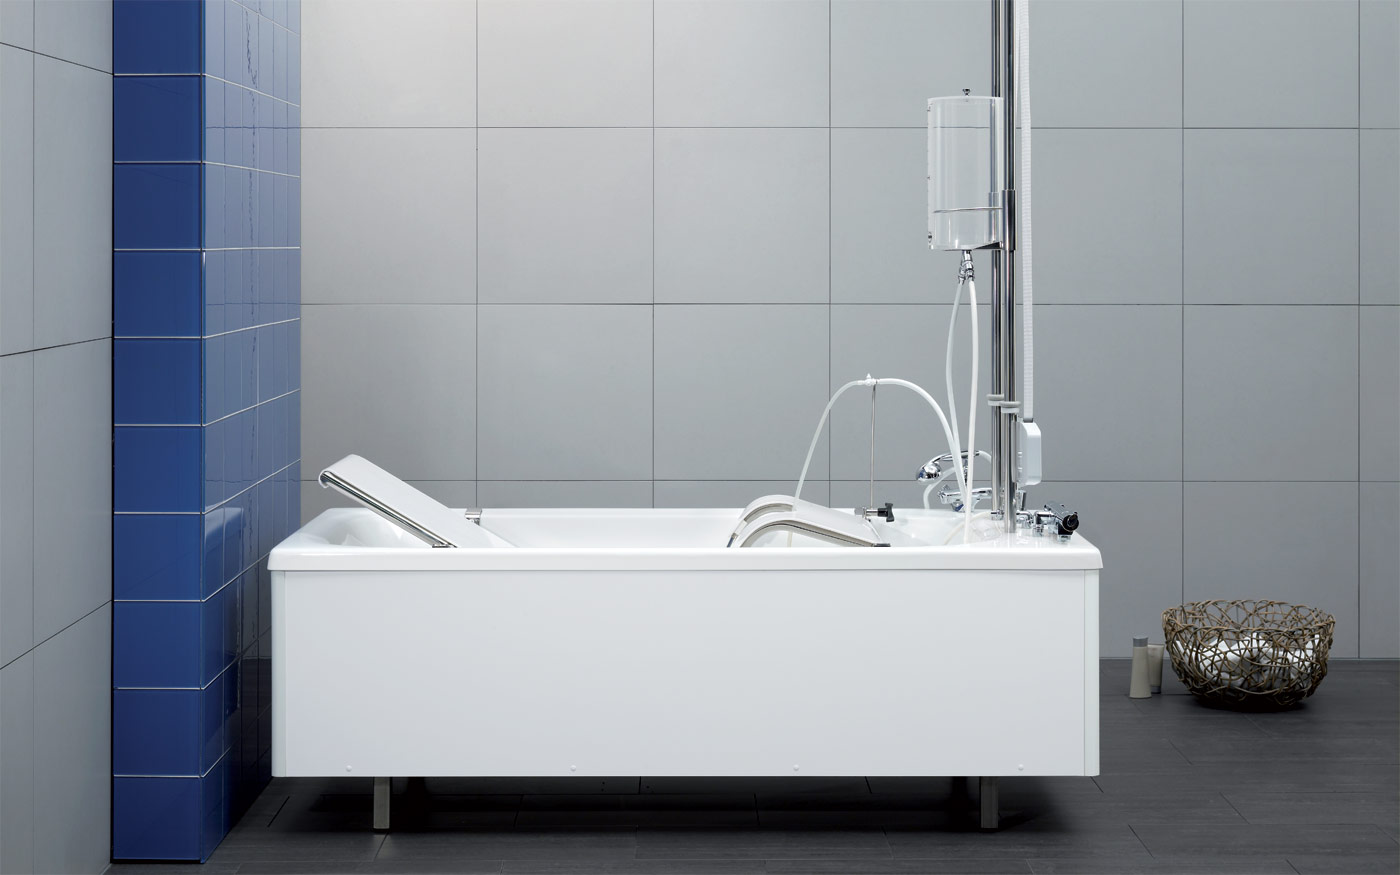 Colonic irrigation equipment